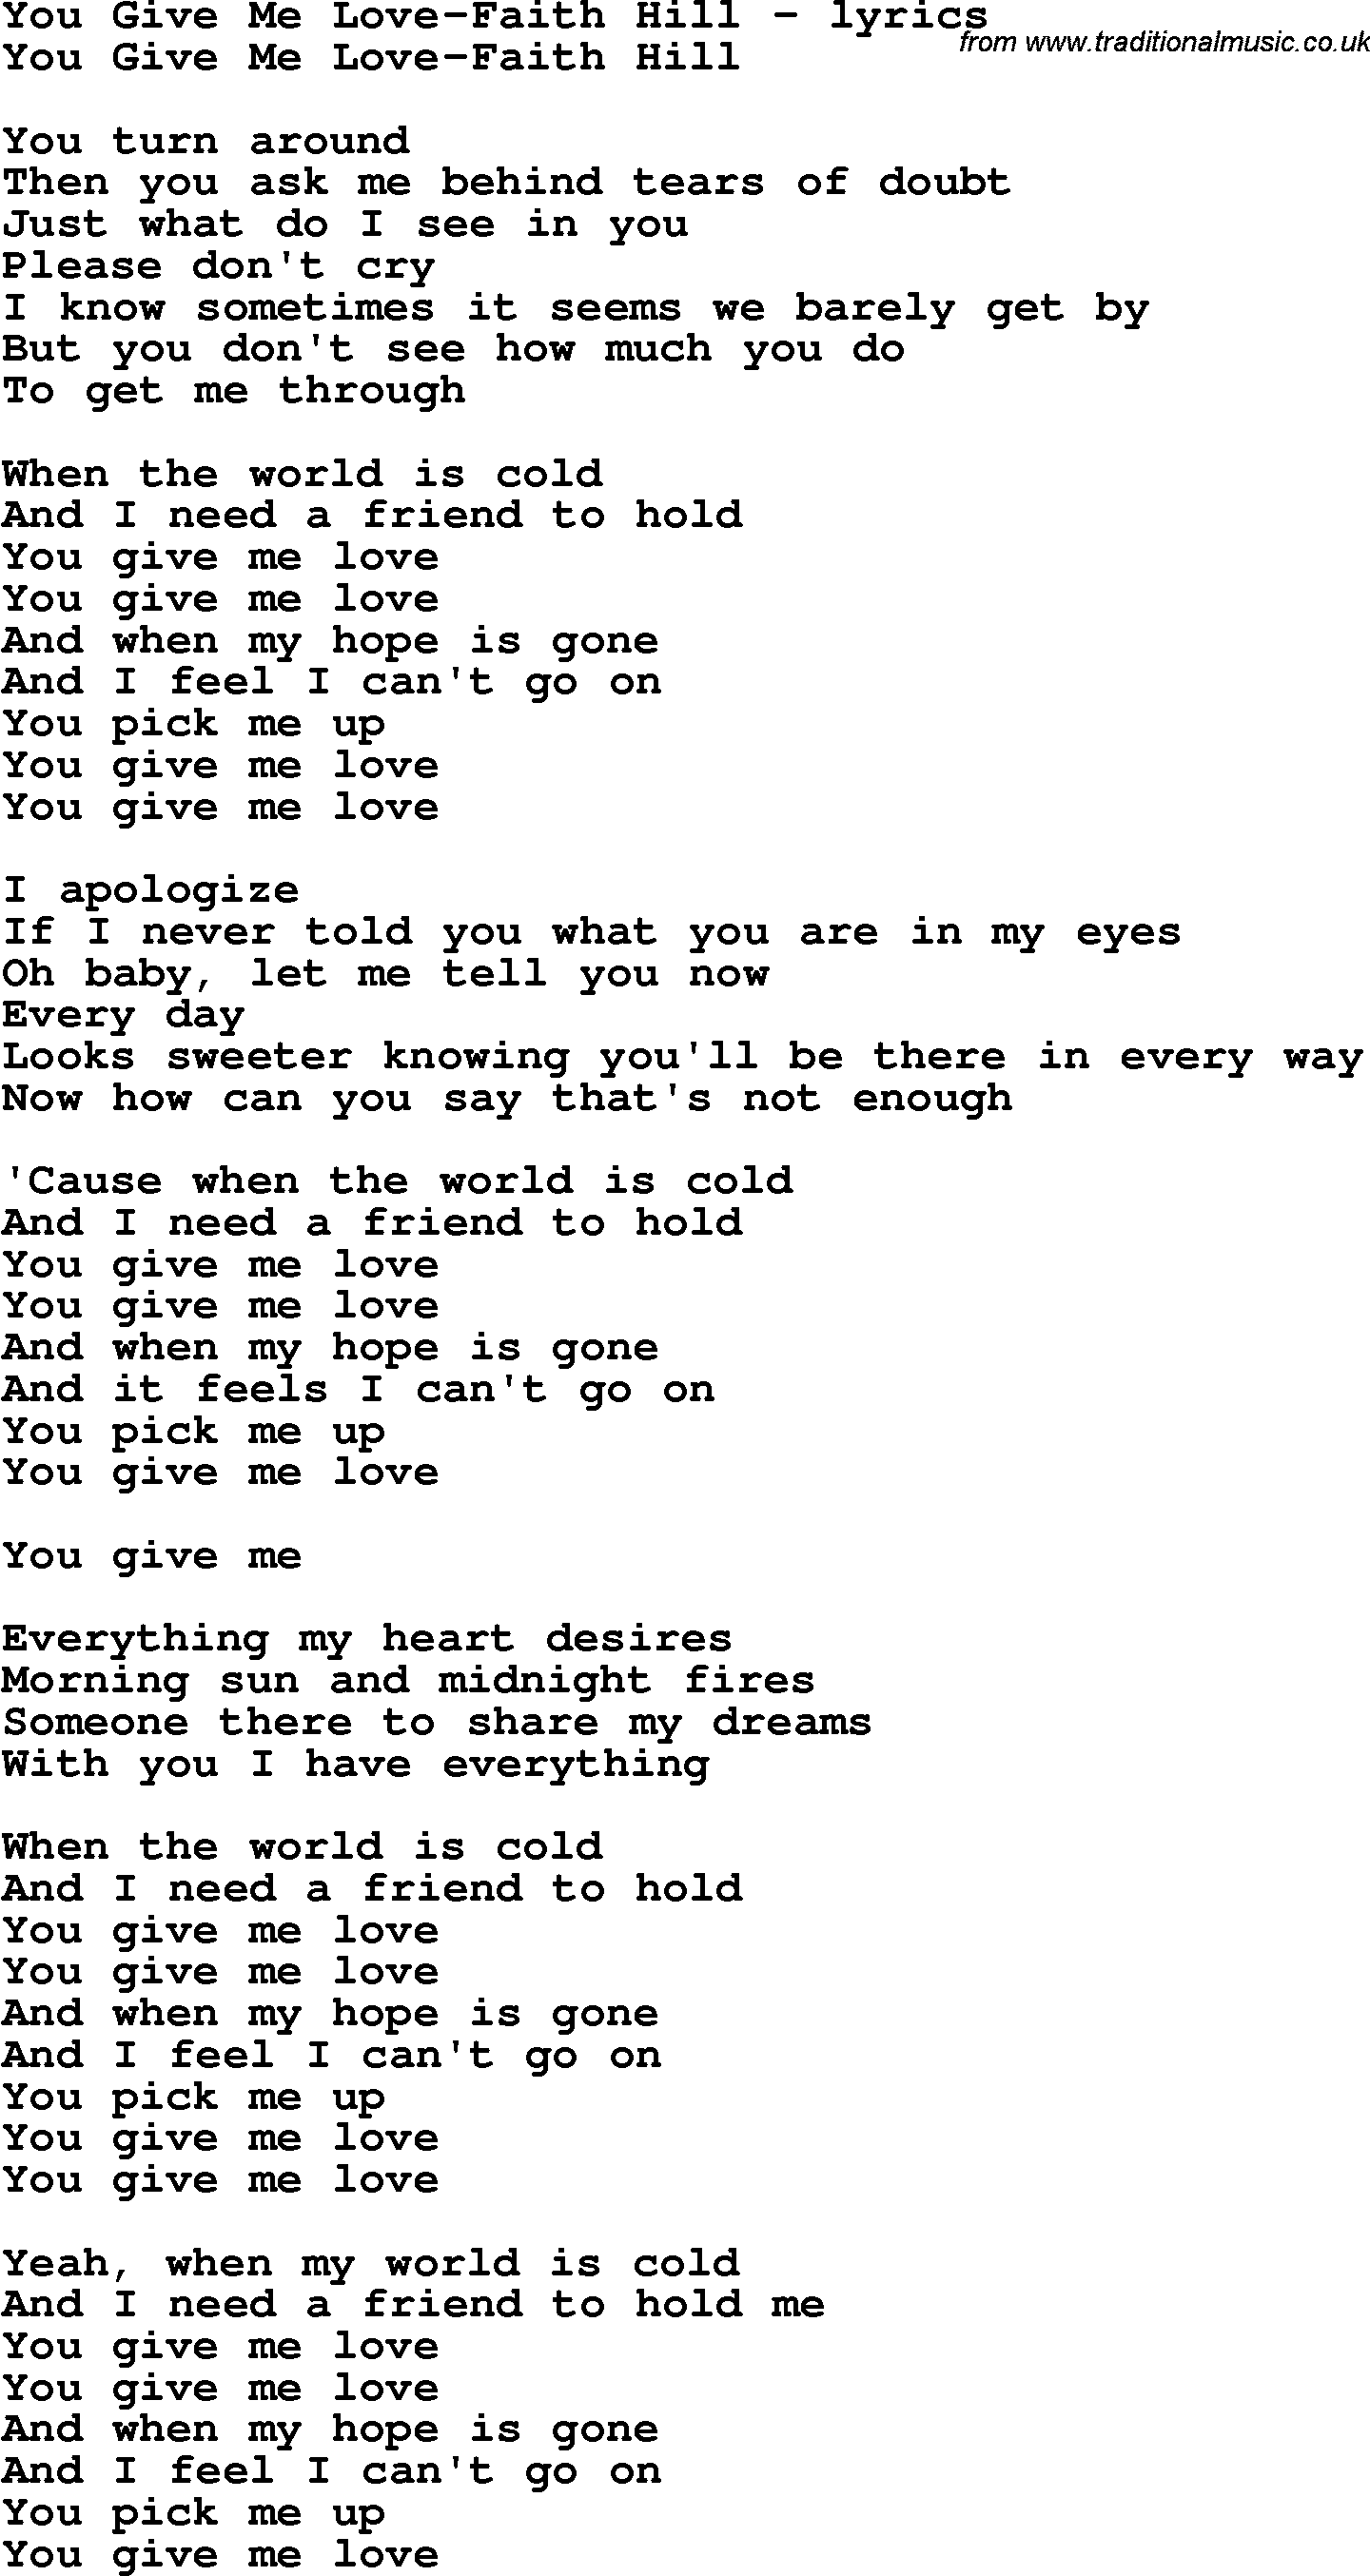 Love Song Lyrics for: You Give Me Love-Faith Hill